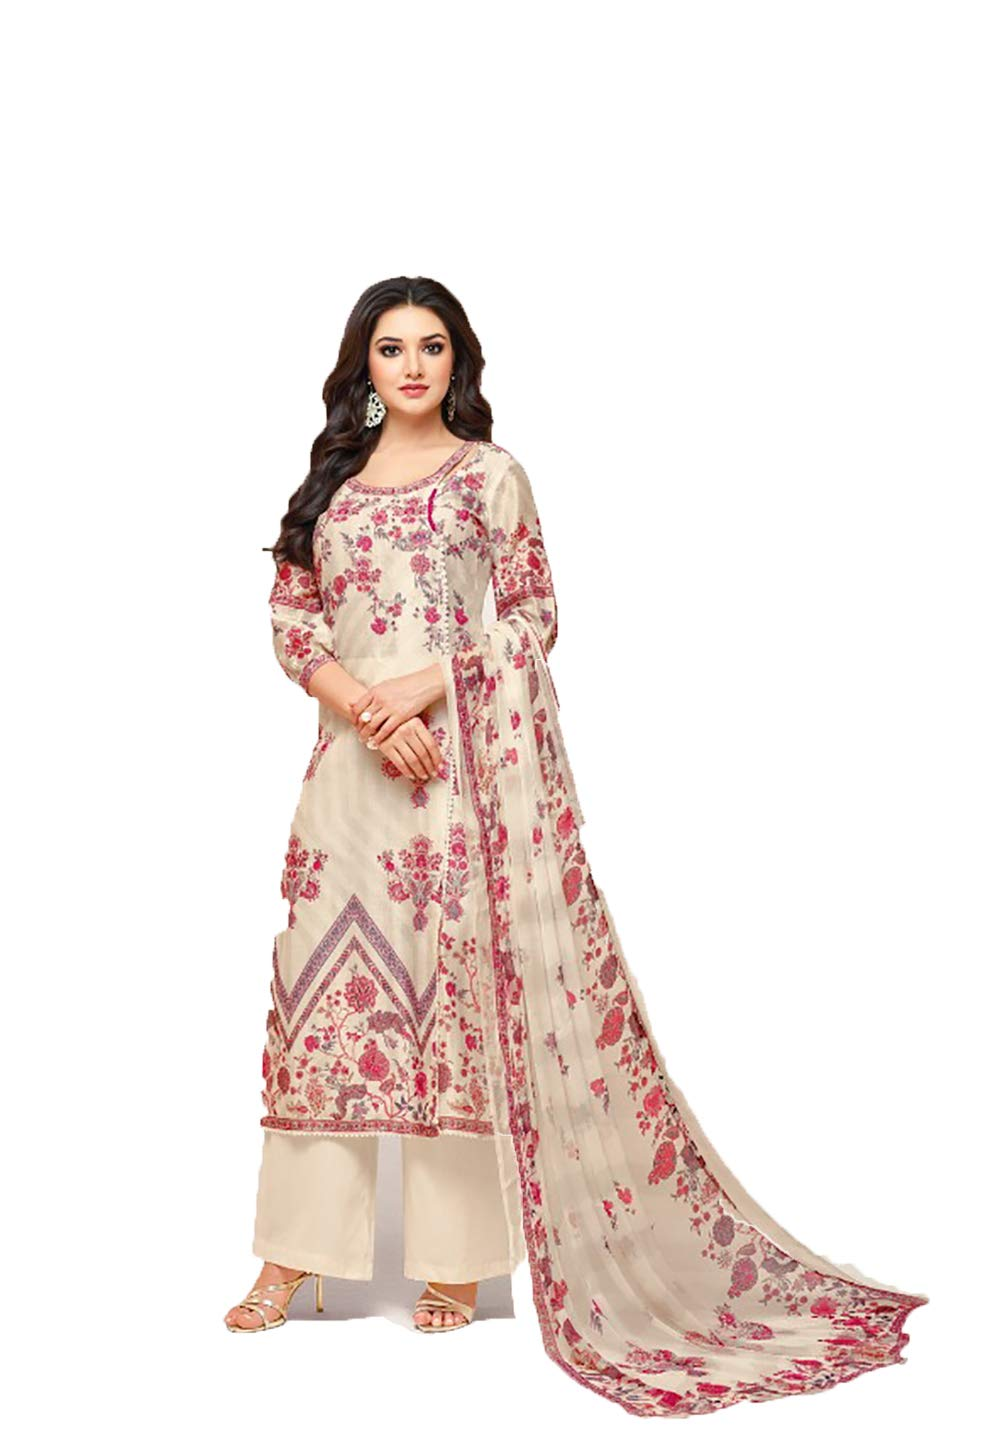 Ready to Wear Variant Colored Camric Cotton Fabric Embroidered Salwar Suit (Pink, Unstitch)